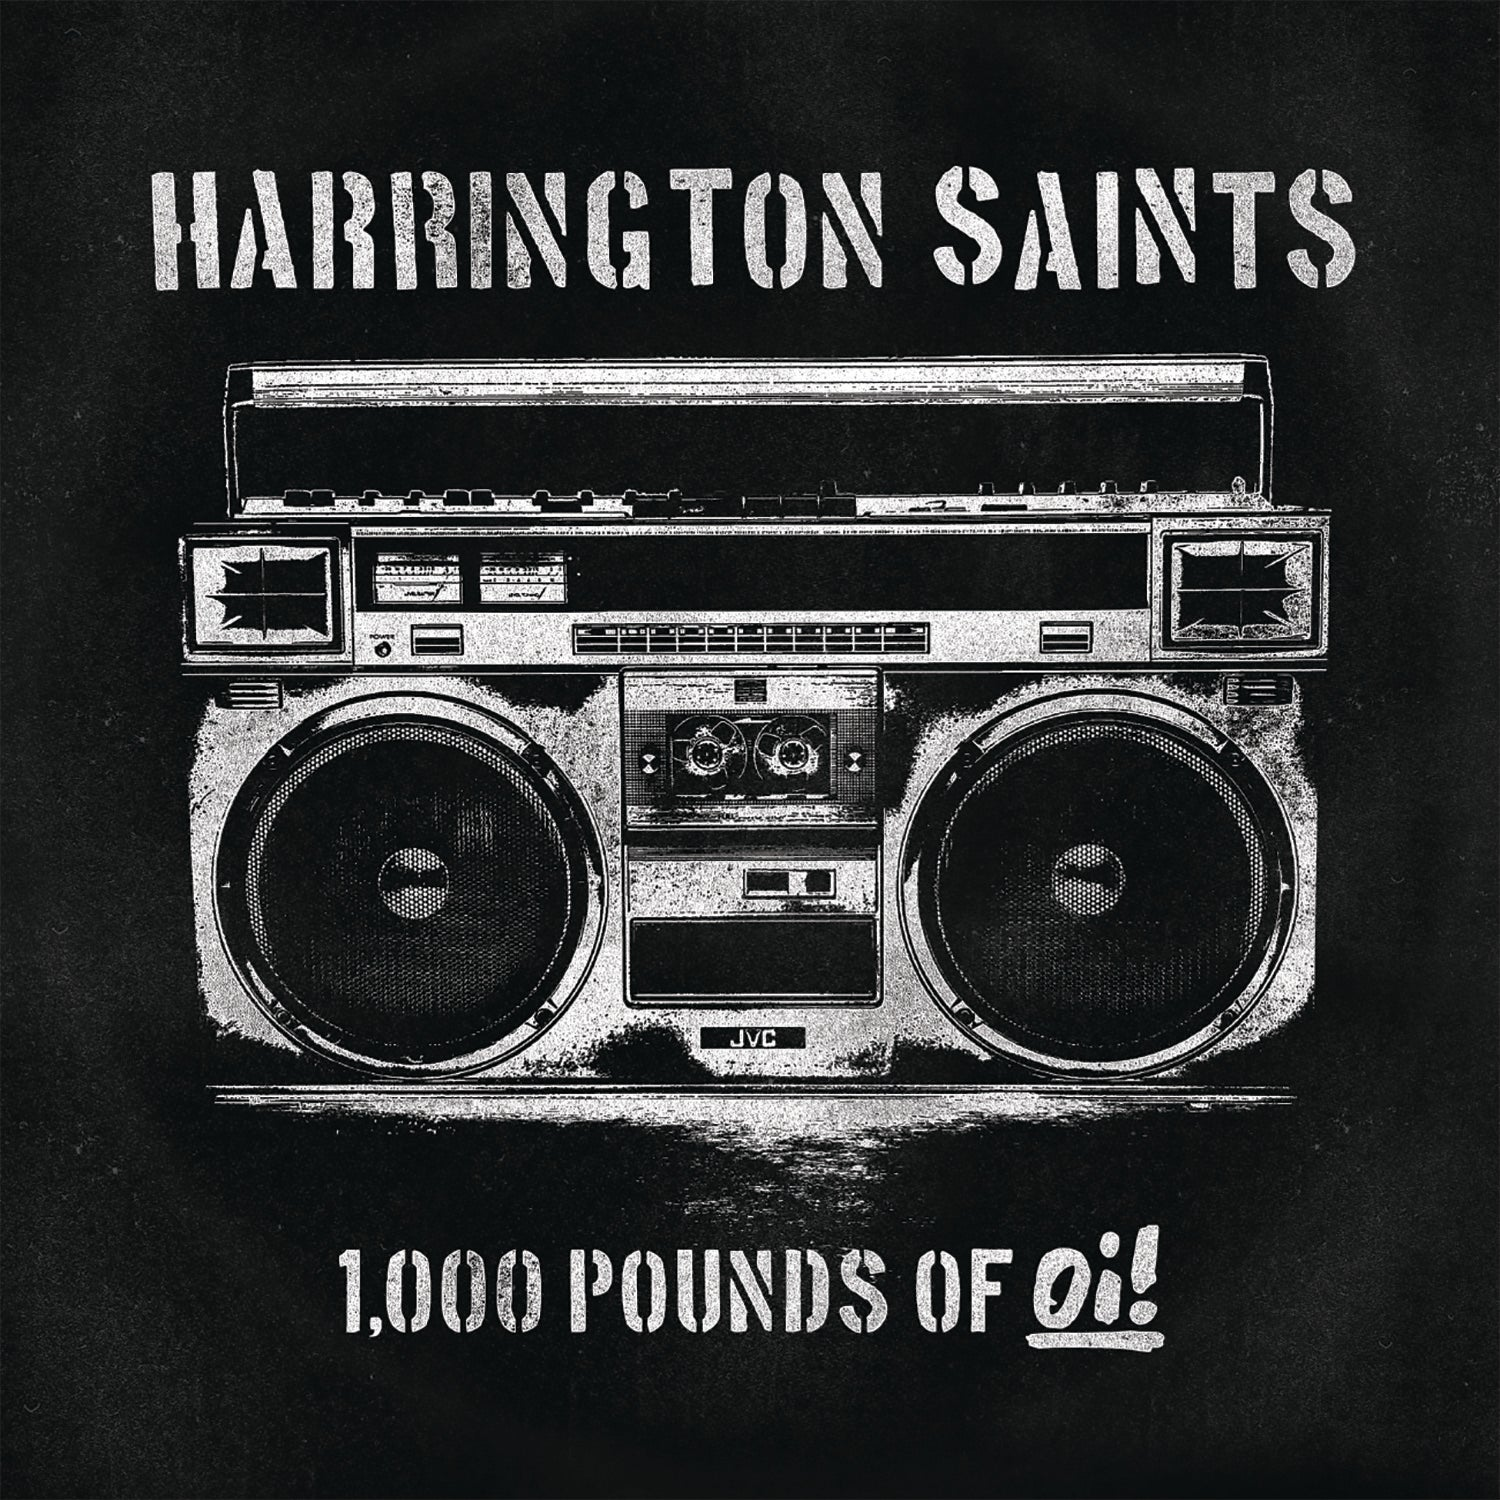 Harrington Saints - 1000 Pounds Of Oi! LP / CD / Digital Download